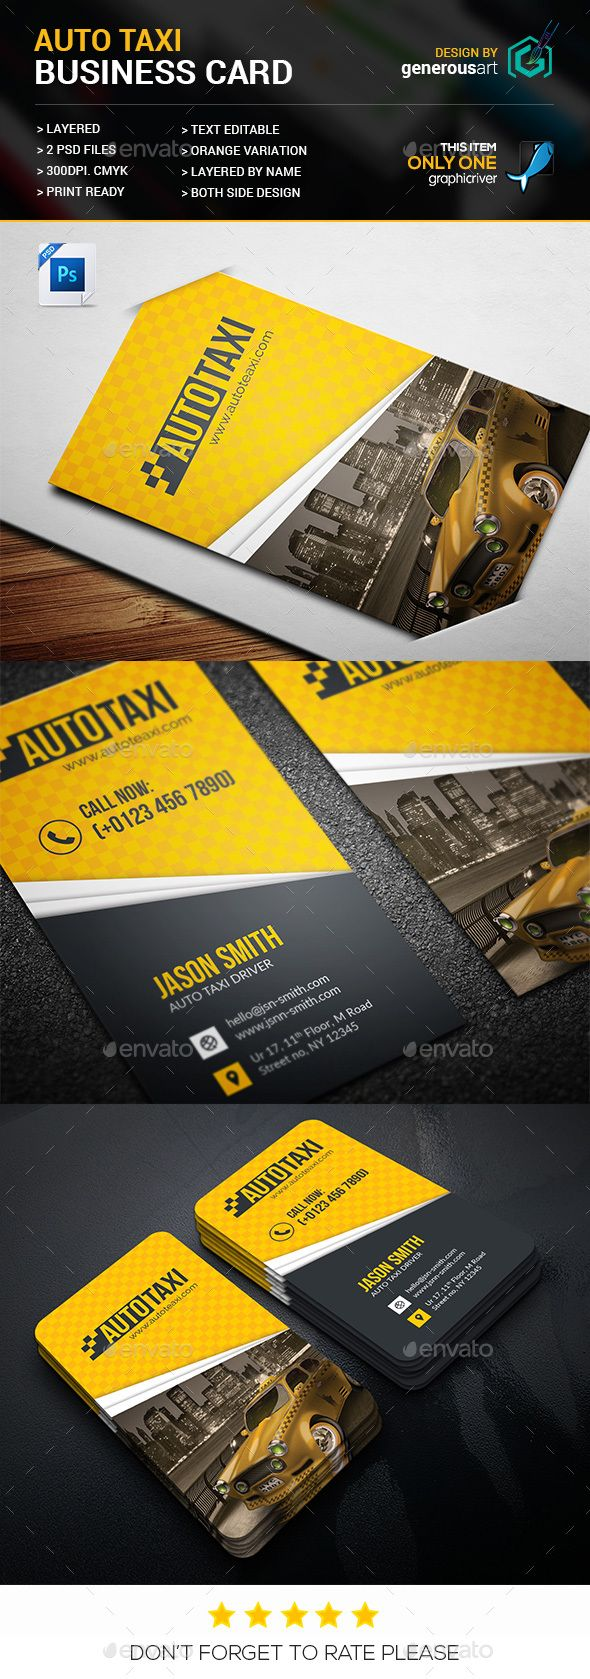 Auto taxi business card business card templates for Taxi business card template